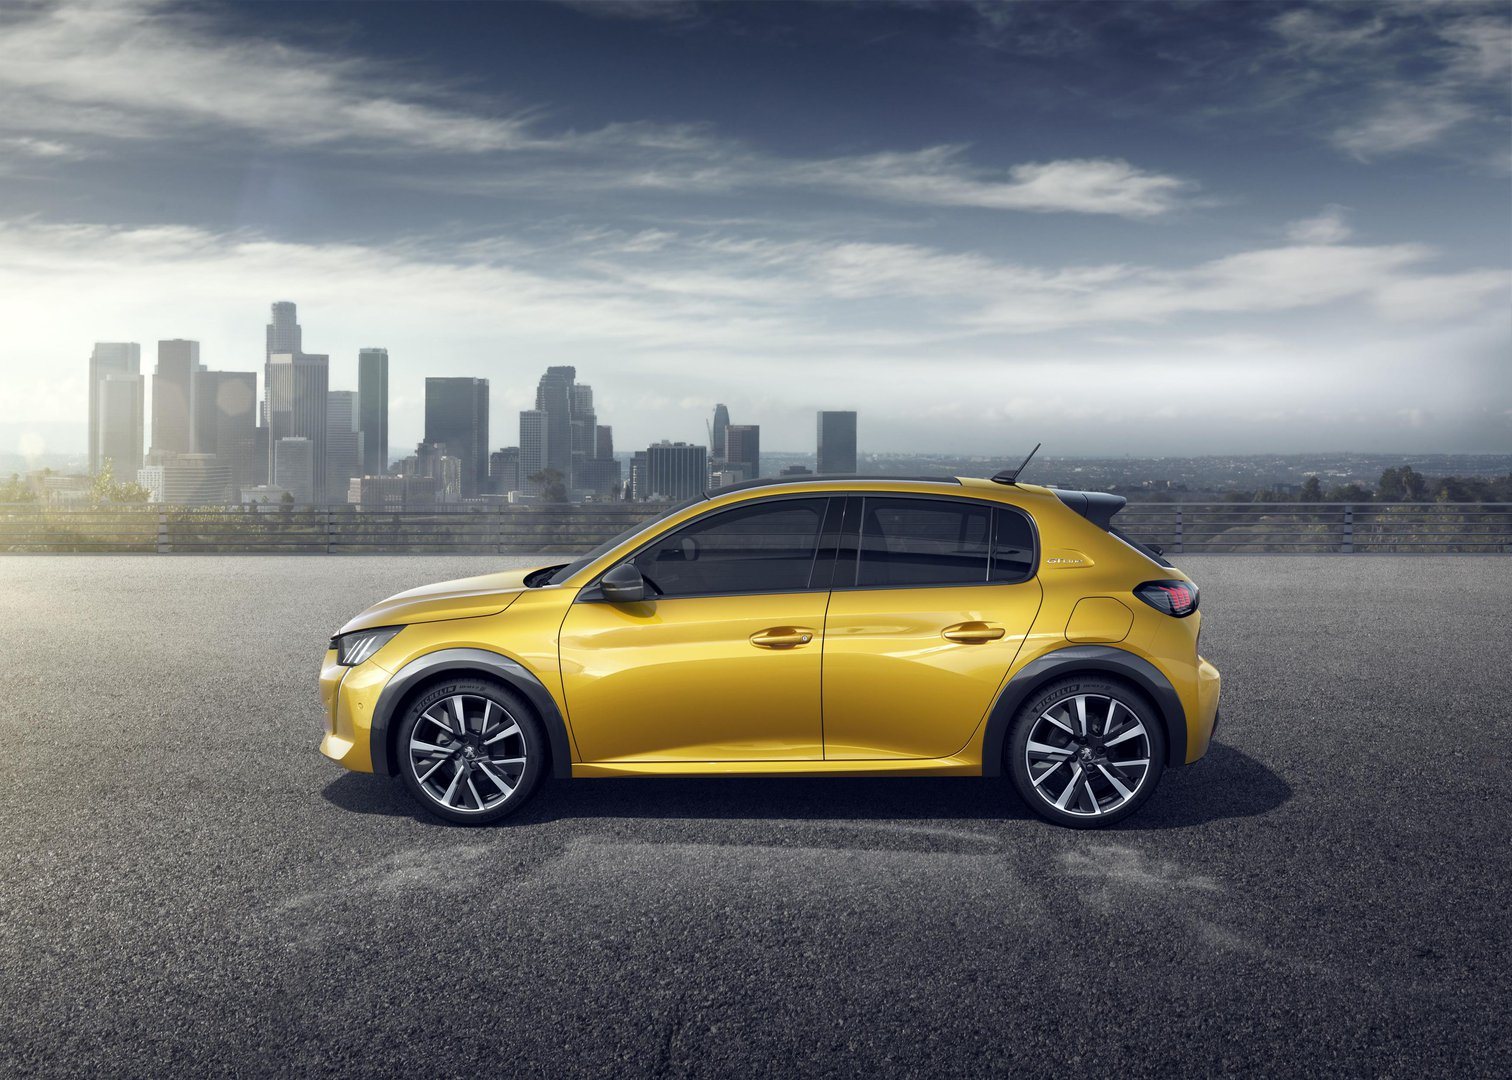 The New Peugeot 208 Is Becoming More Environmentally